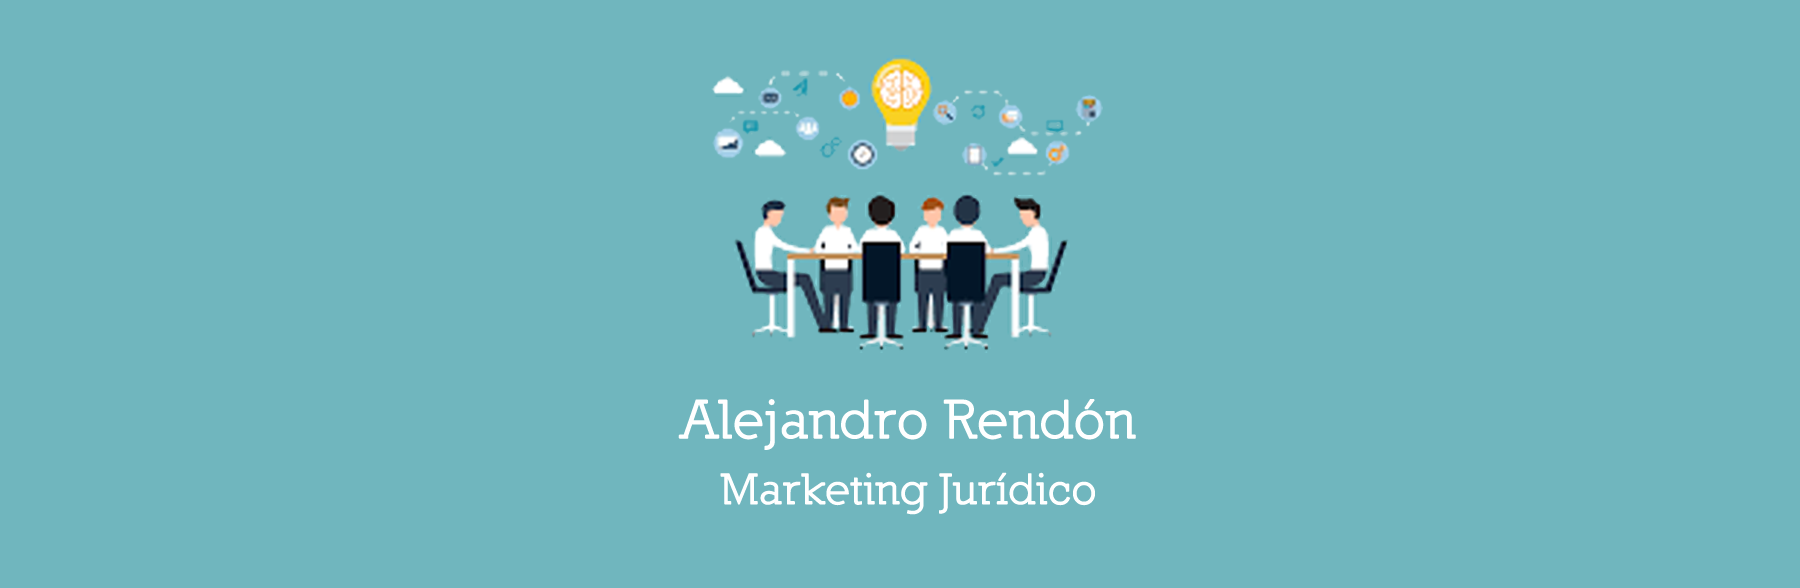 alejandro-rendon-marketing-juridico-en-mexico